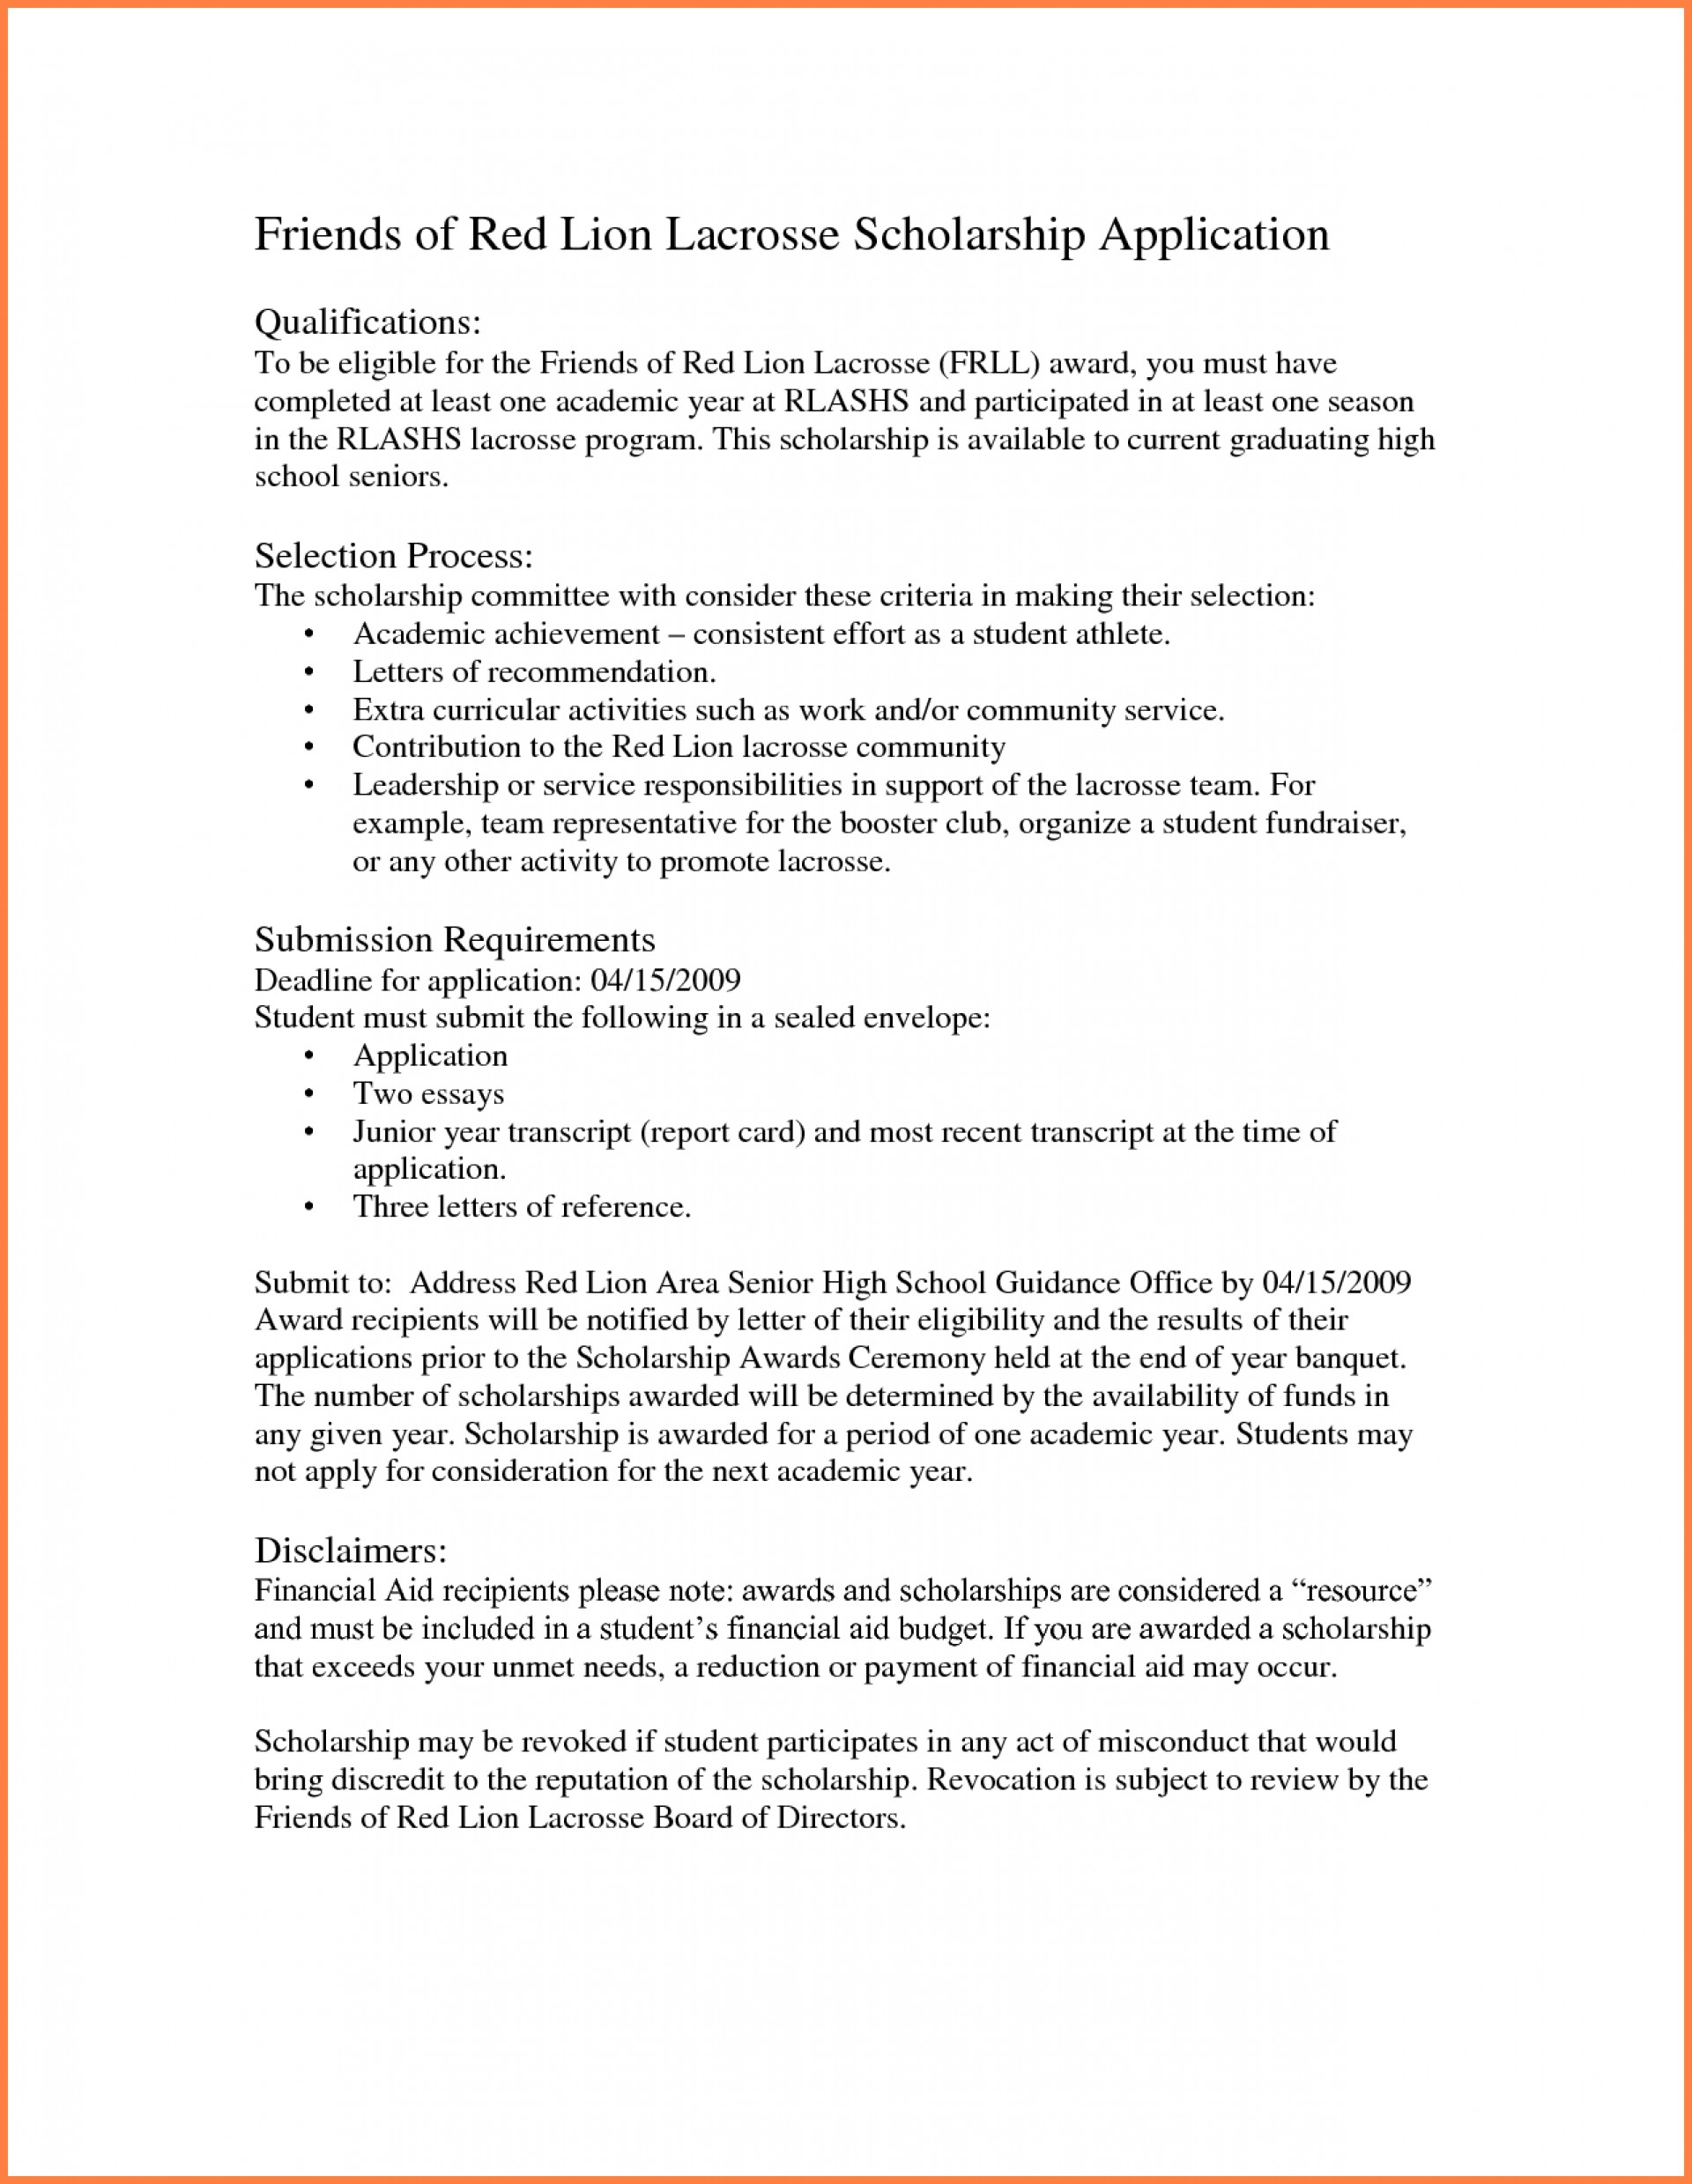 002 Why I Need Financial Aid Essay Cover Letter Samples Deserveis Scholarship College How To Contests Examples About Yourself Template Format Prompts Tips Competition Example Top Deserve This Write Pdf Sample 1920